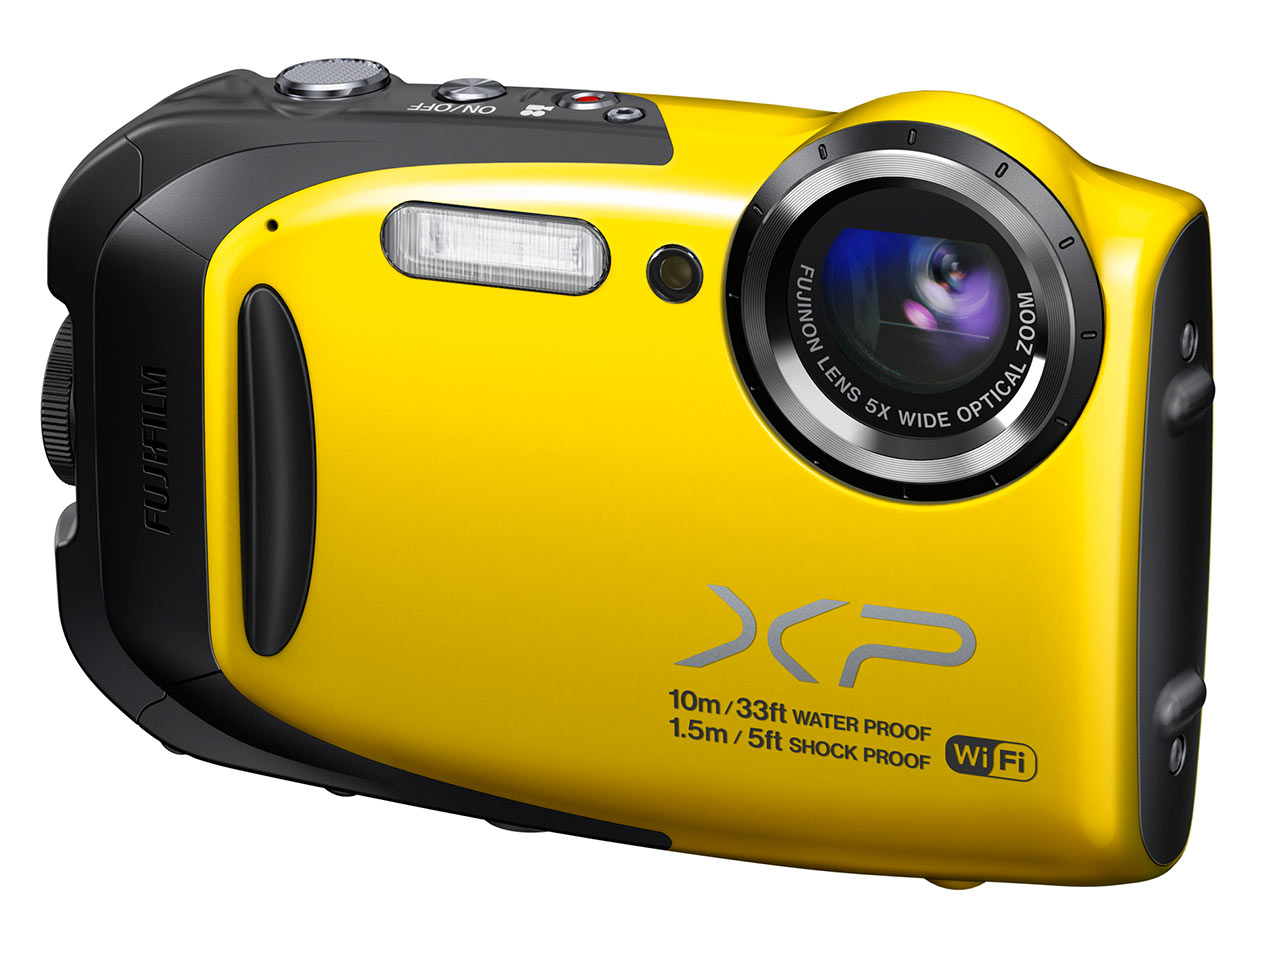 rugged fujifilm finepix xp70 offers wi fi full hd video digital rh dpreview com fujifilm xp user manual fuji xp owners manual